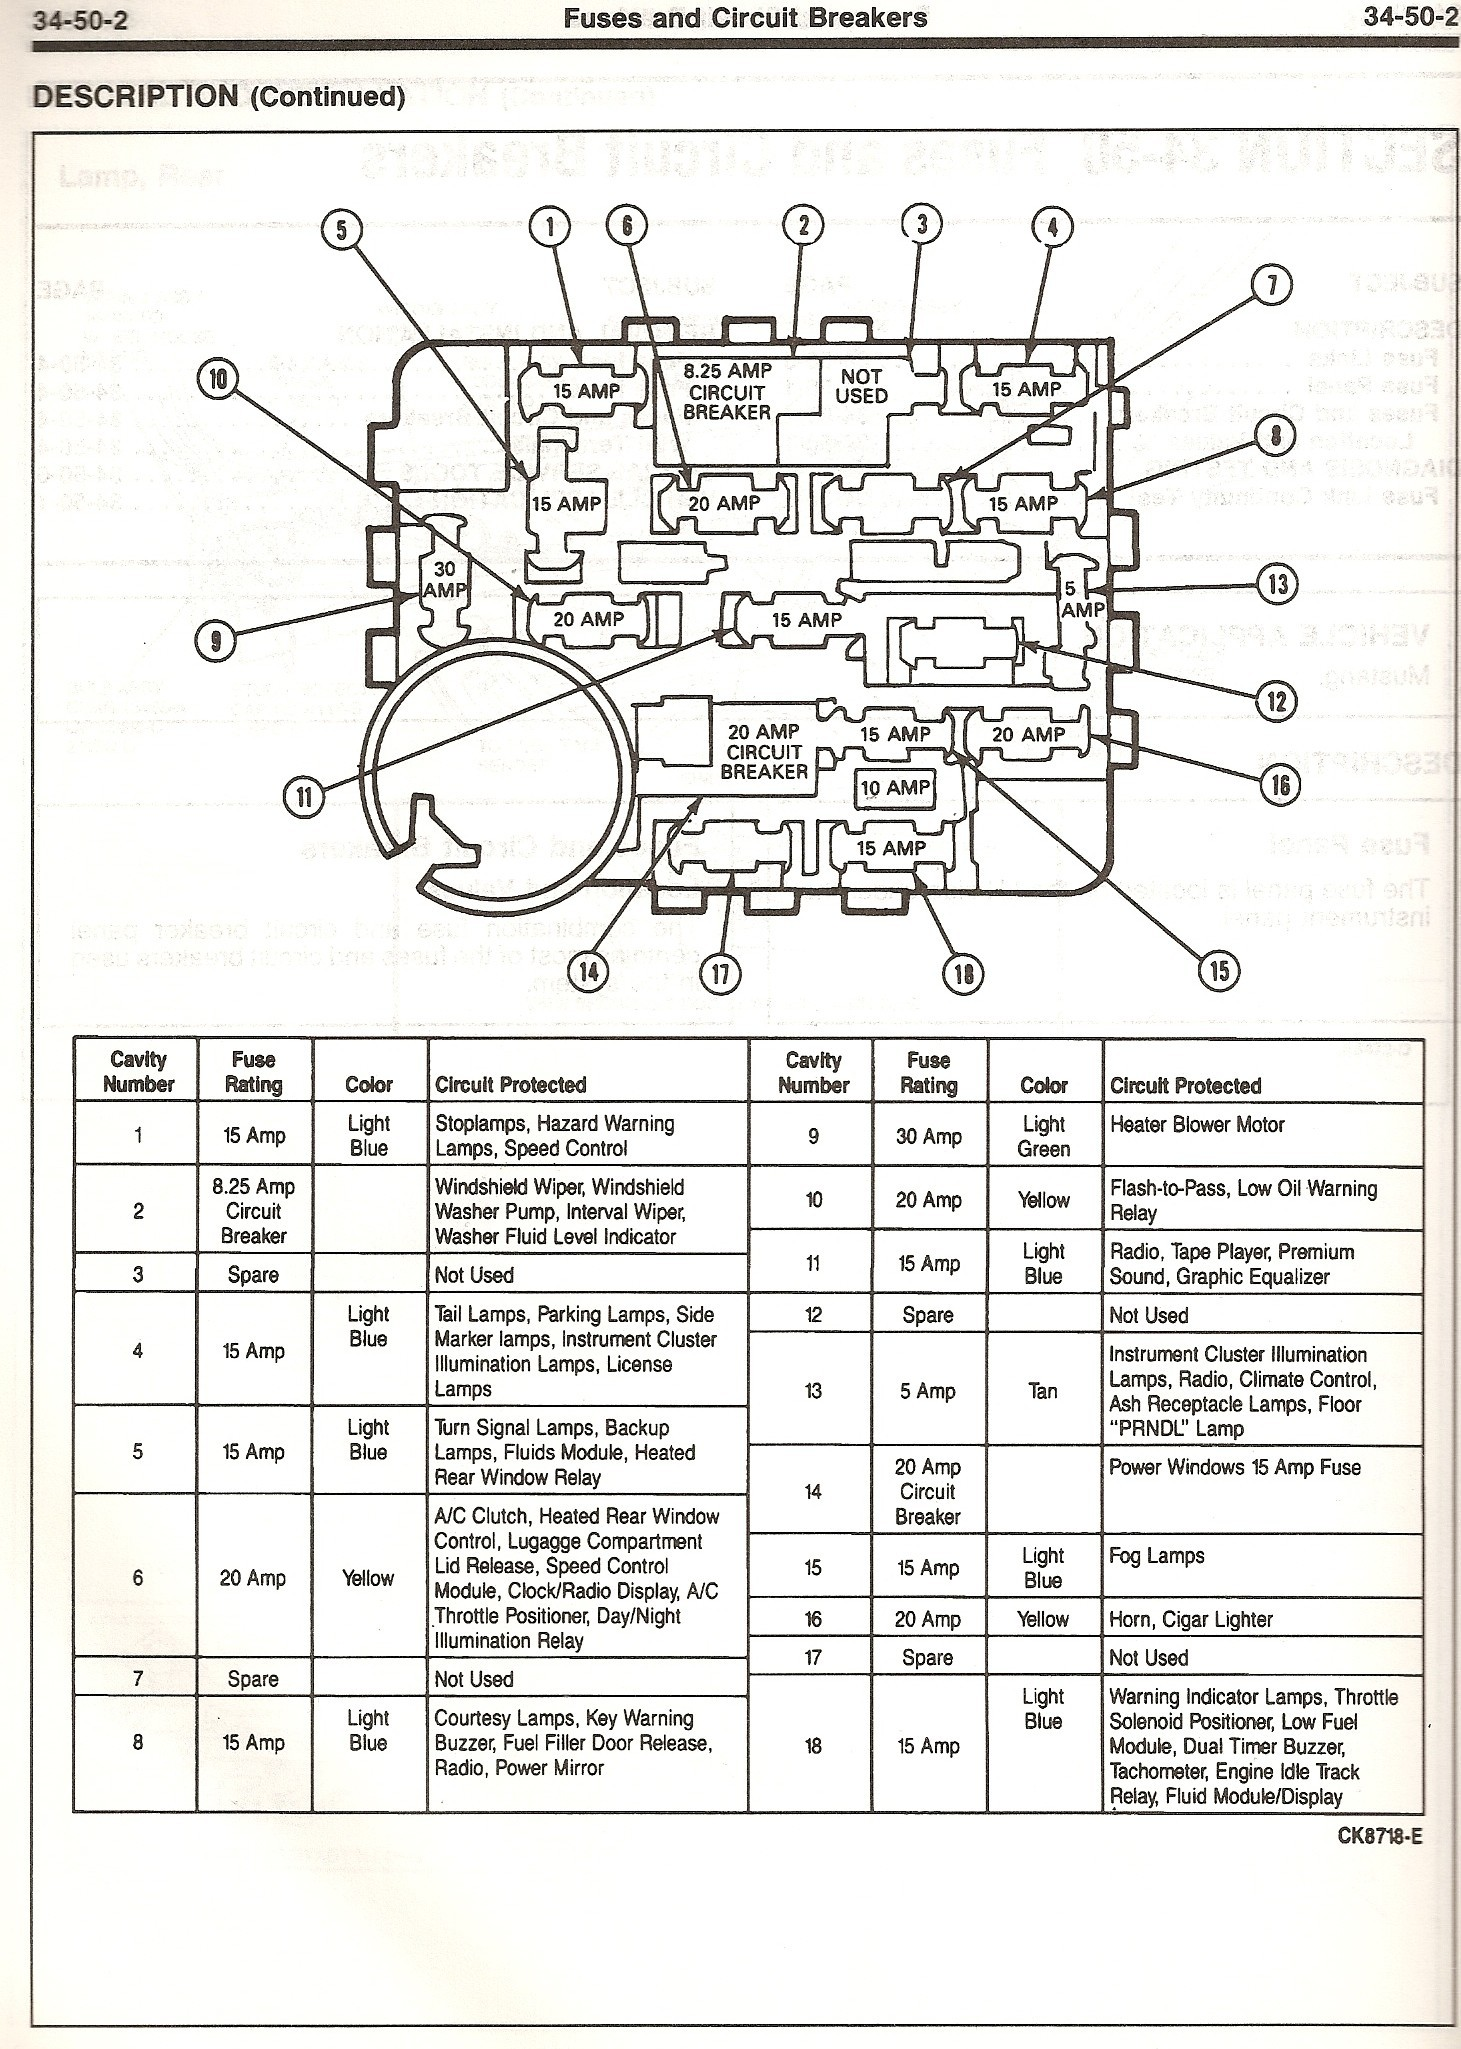 2004 ford Explorer Engine Diagram Diagram ford Explorer Fuse Panel Diagram Of 2004 ford Explorer Engine Diagram